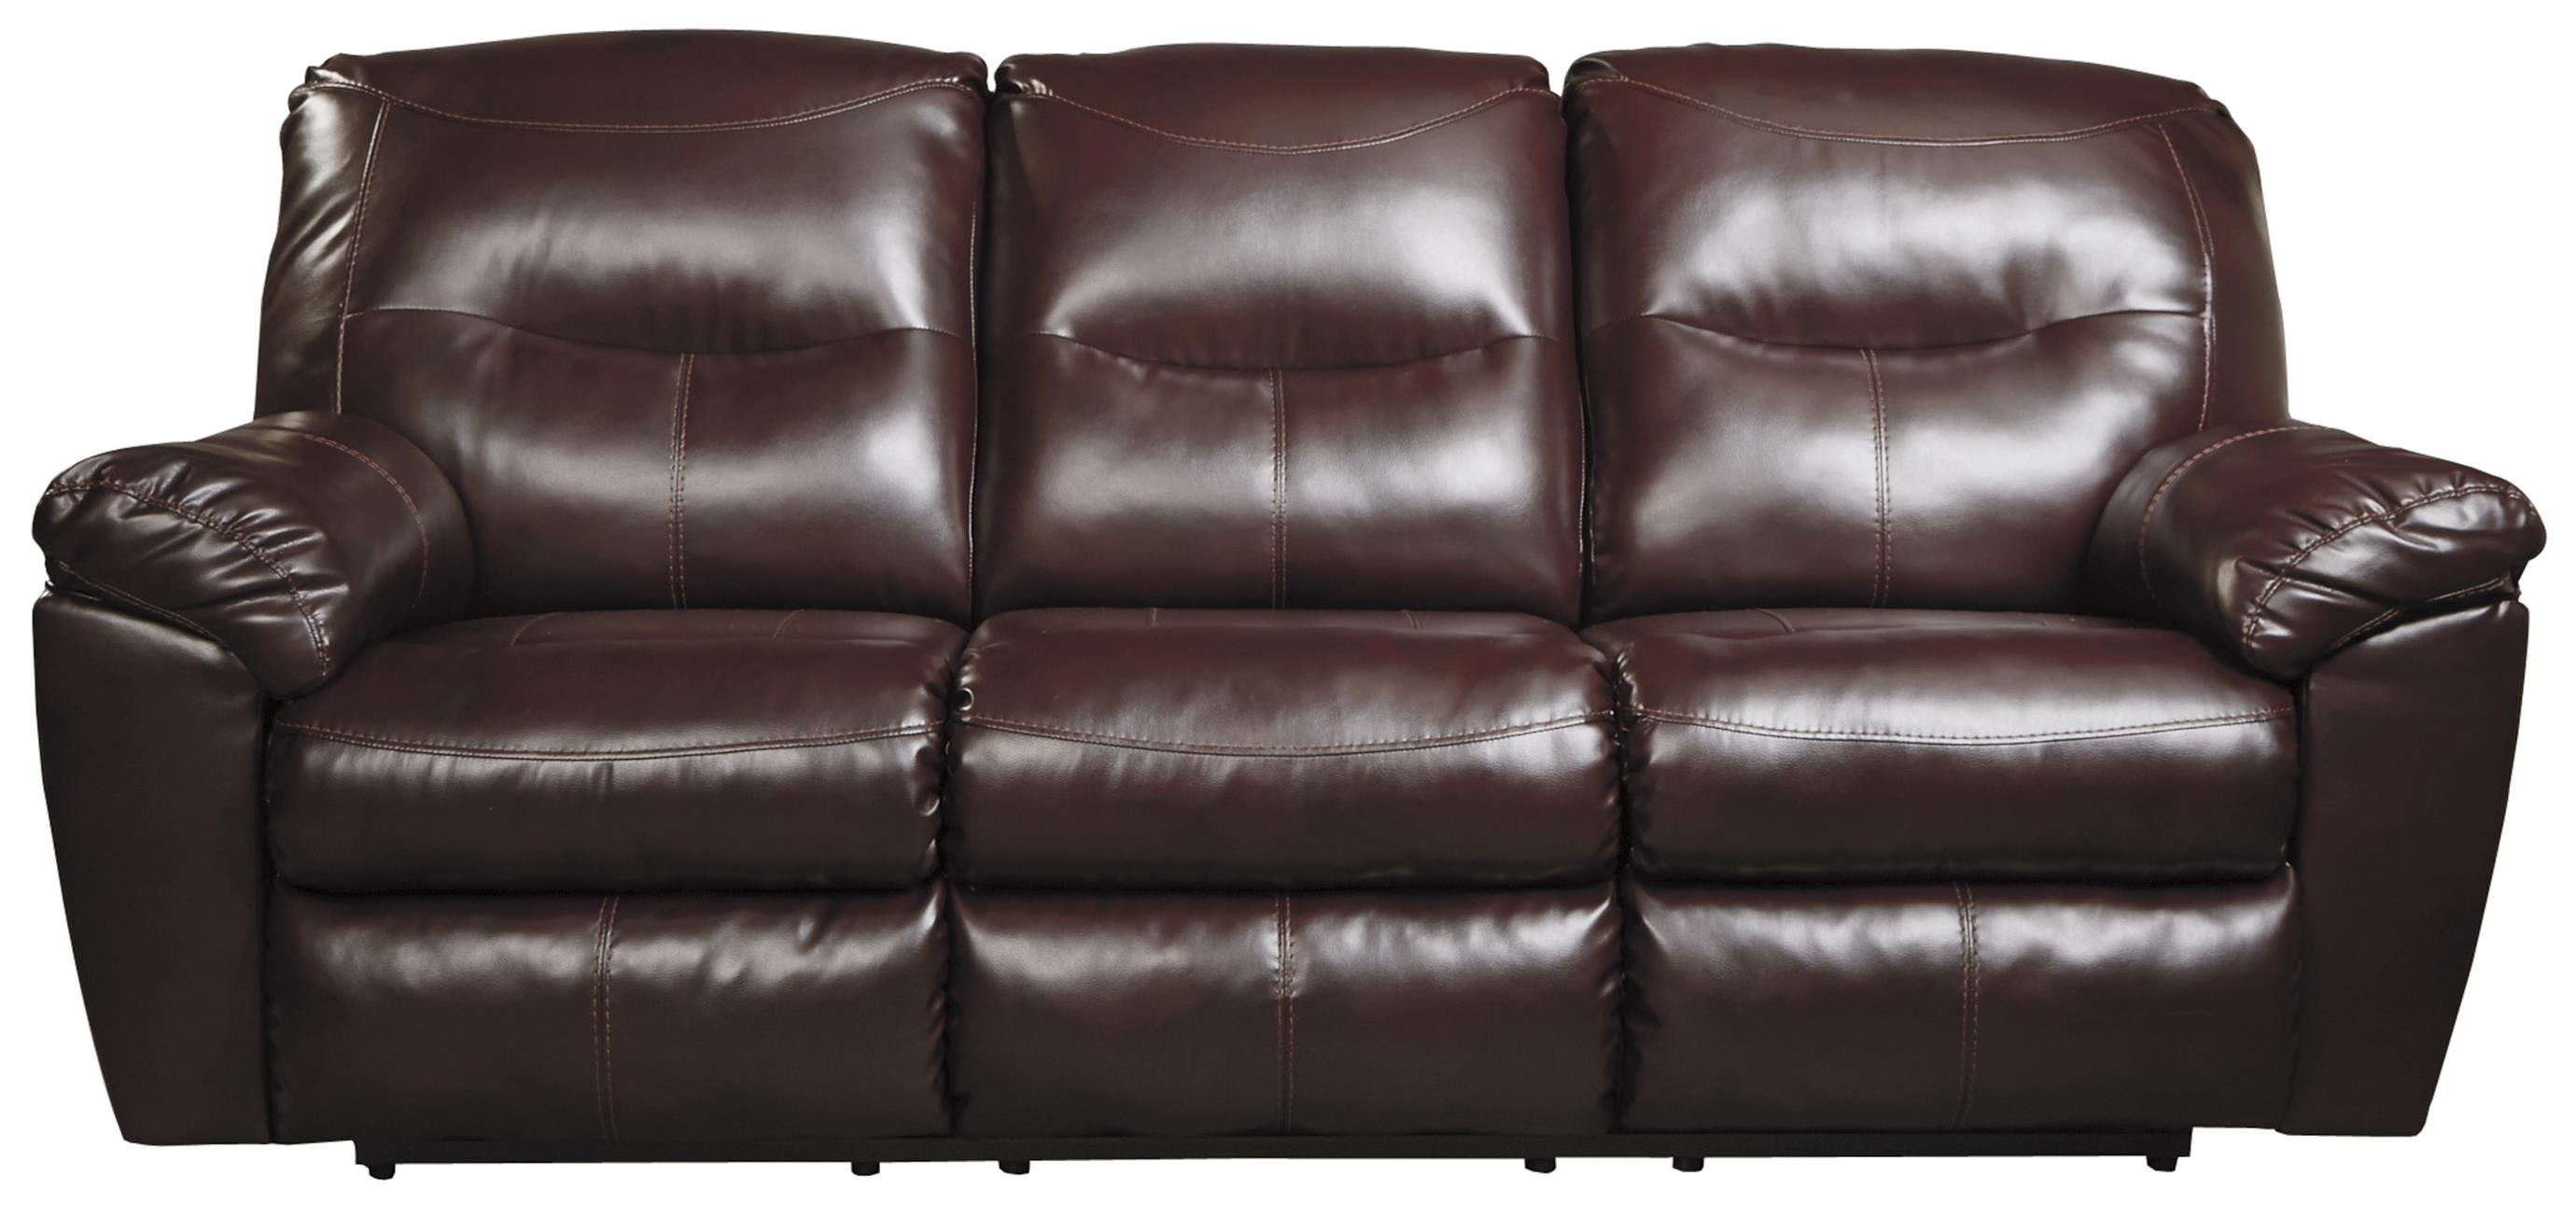 Signature Design by Ashley Kilzer DuraBlend® Reclining Sofa - Item Number: 8470288